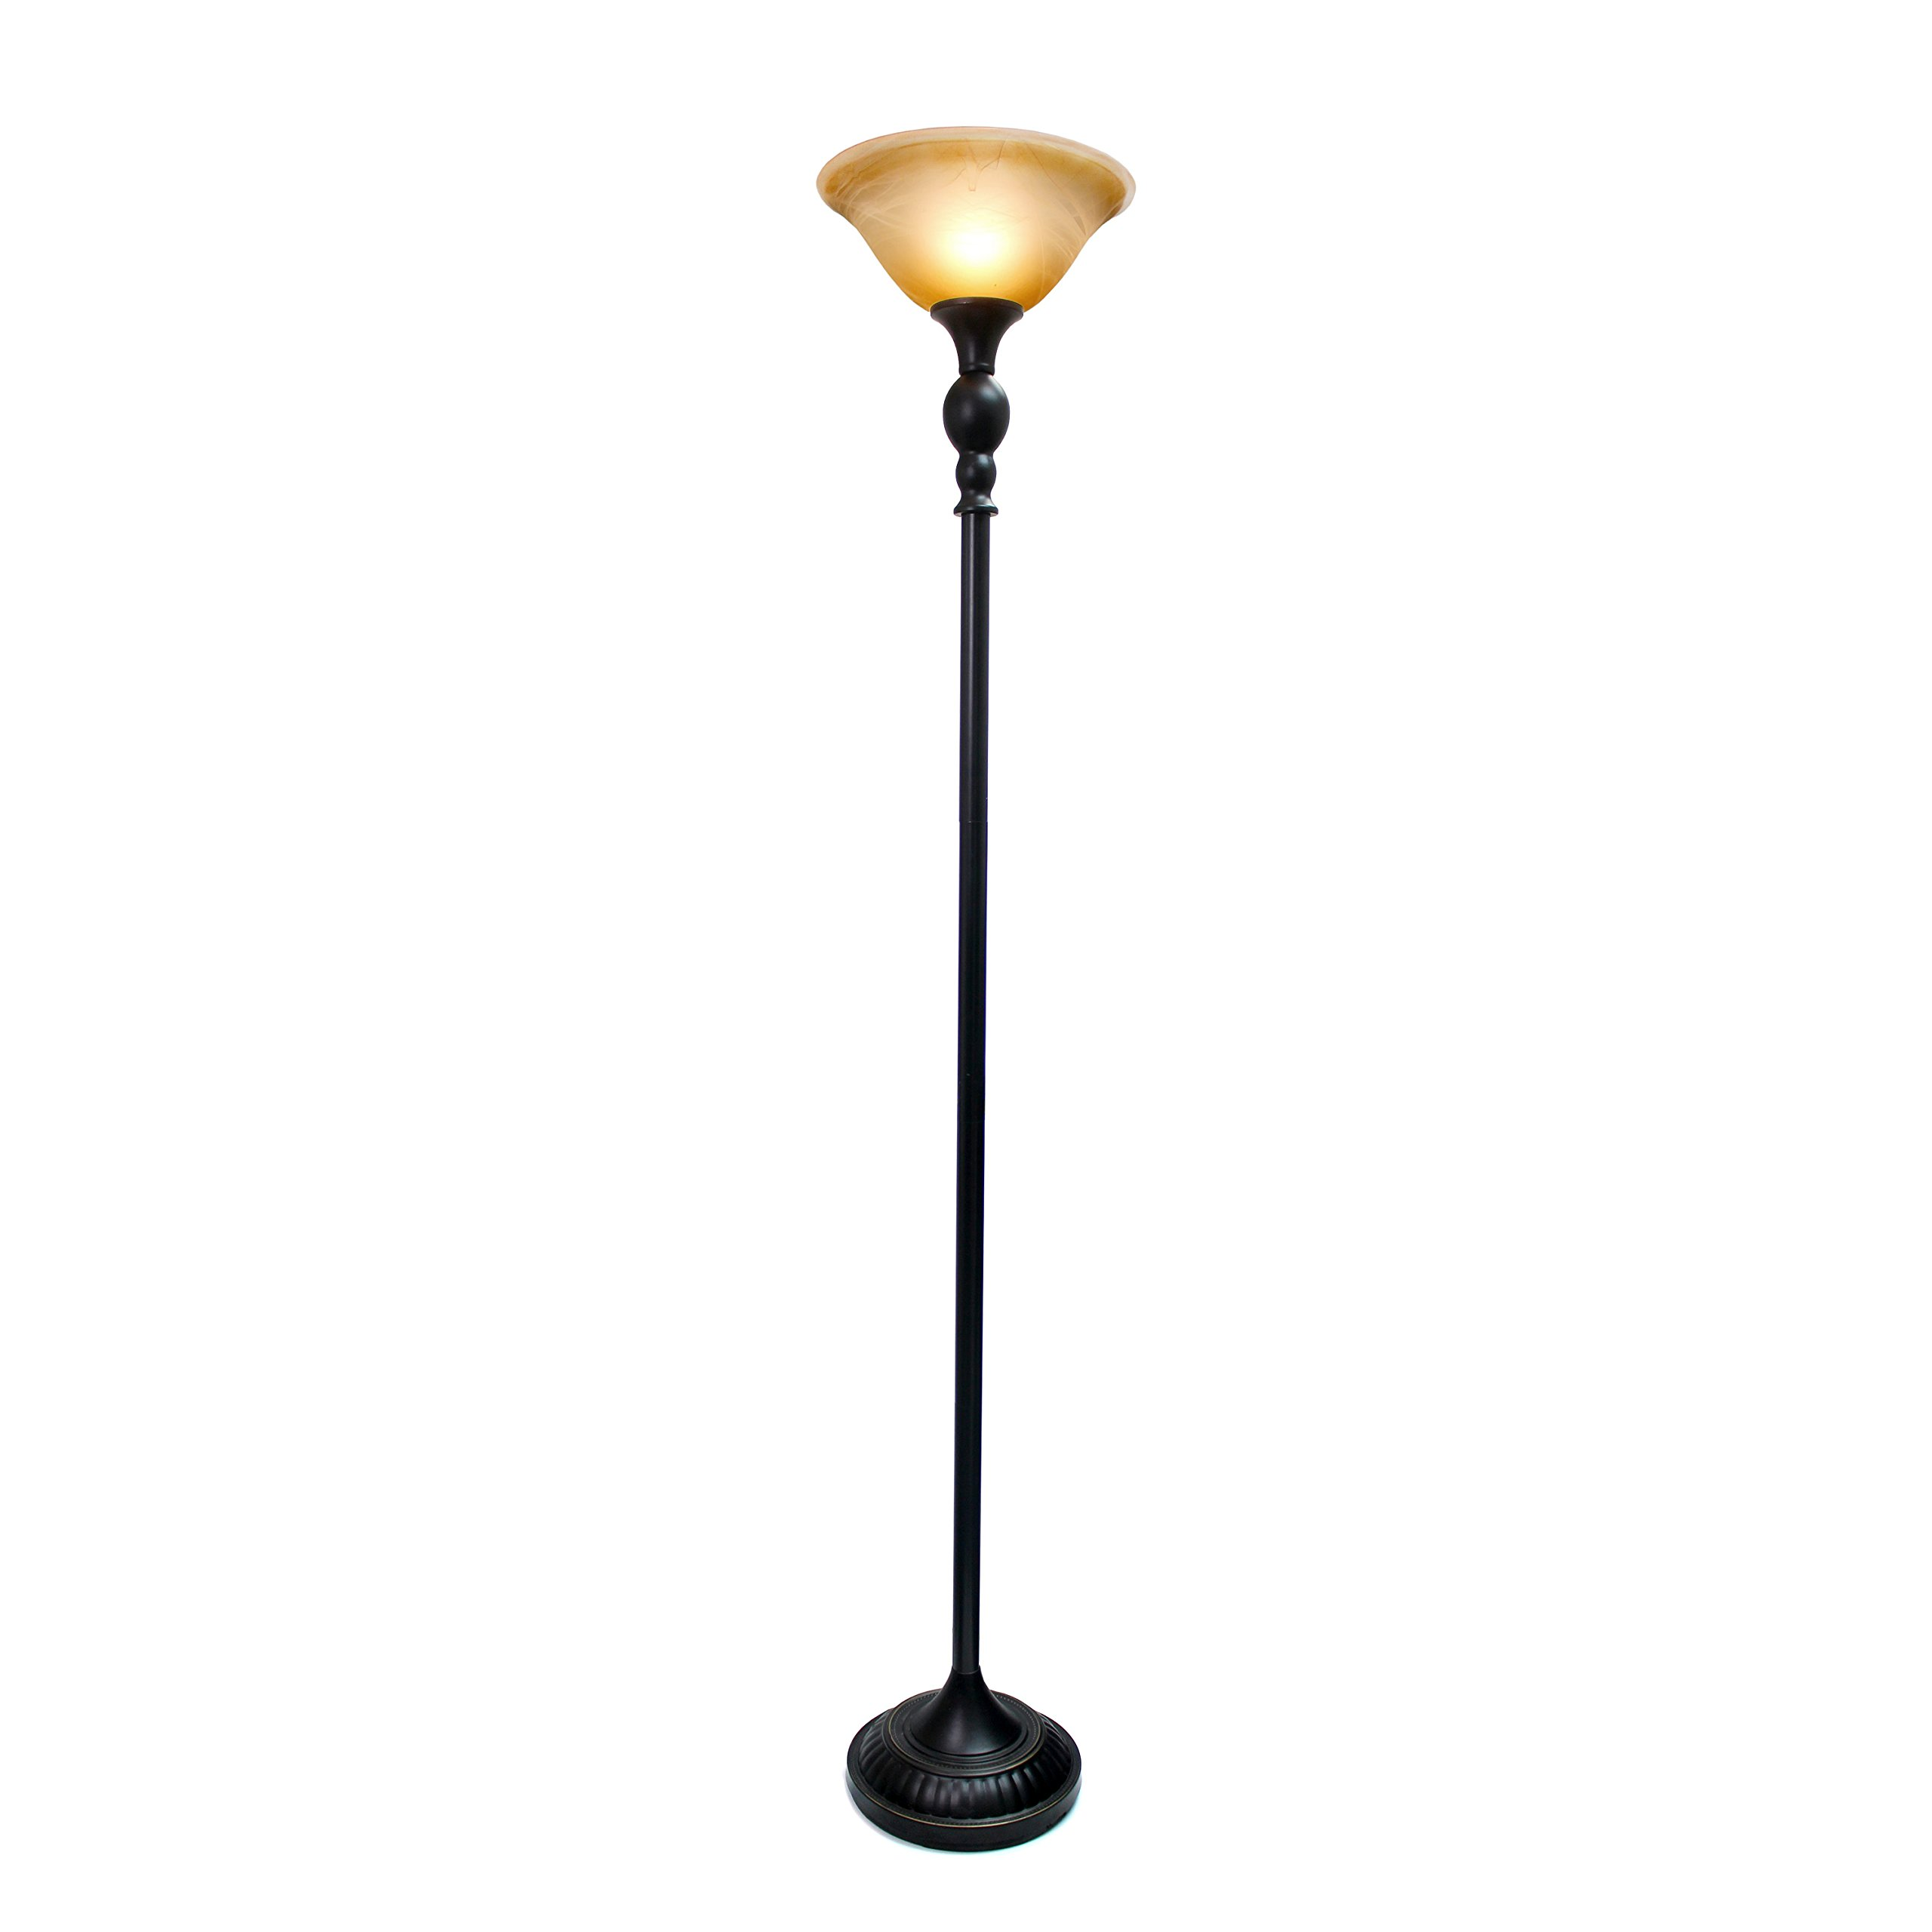 Elegant Designs LF2001-RBZ Torchiere Floor Lamp 1 Light Torchiere Floor Lamp with Marbelized Amber Glass Shade,Restoration Bronze by Elegant Designs